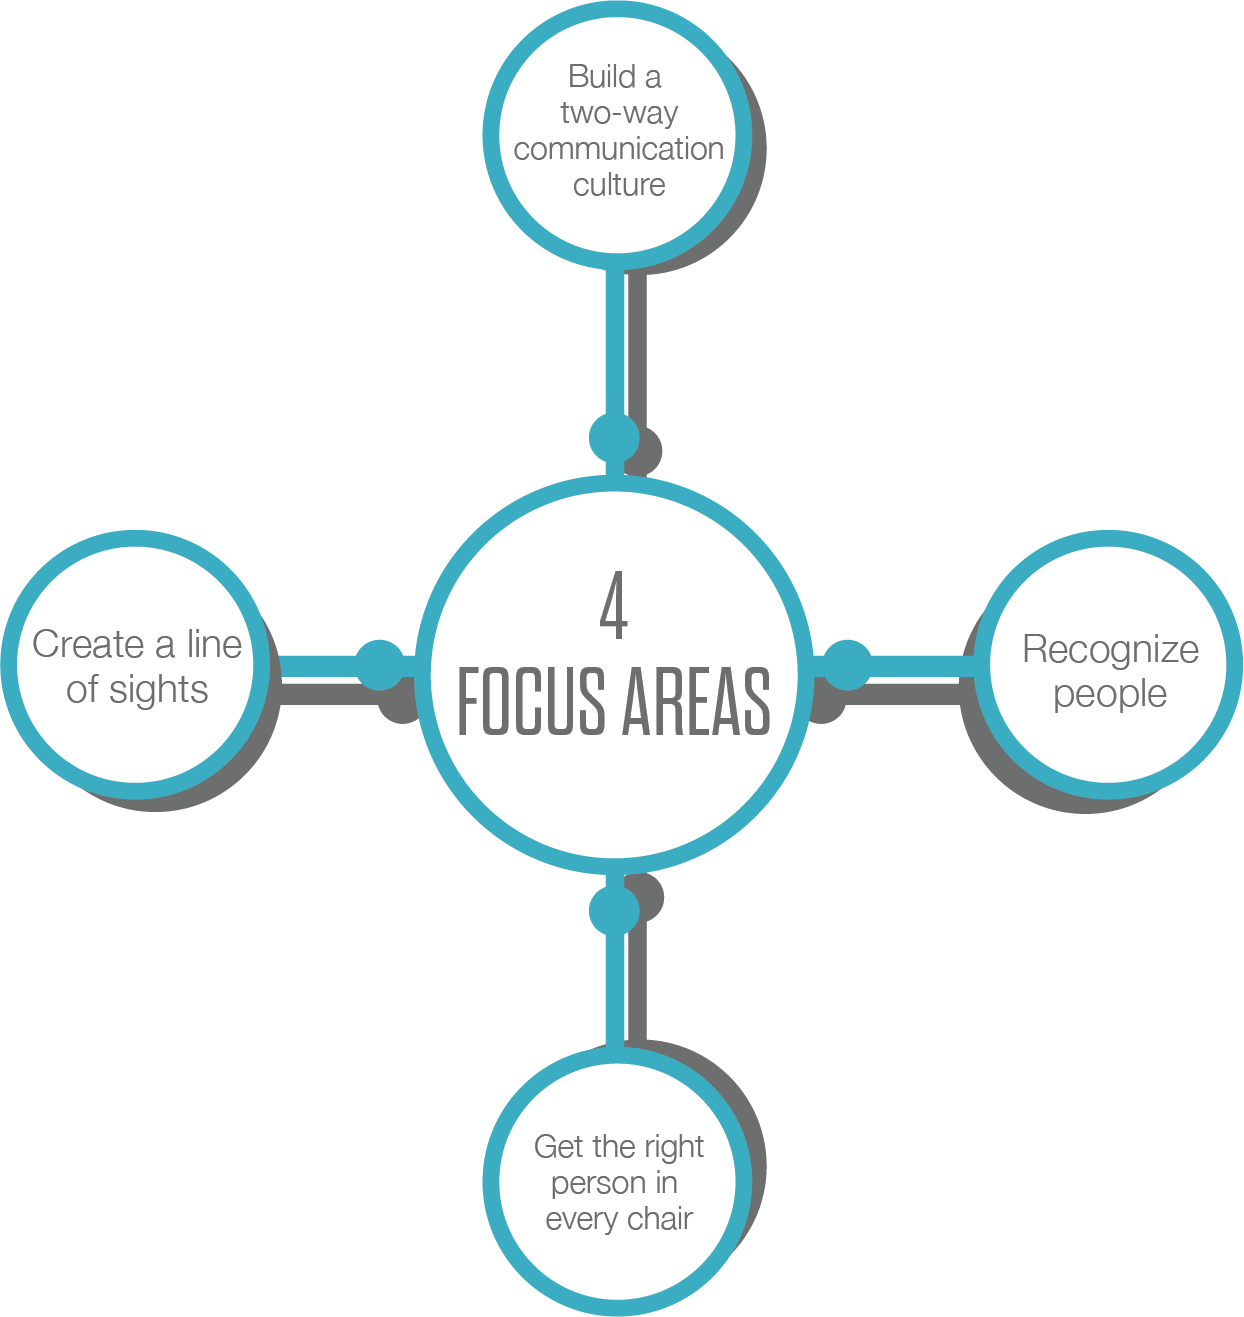 An infographic describing the 4 Focus Areas